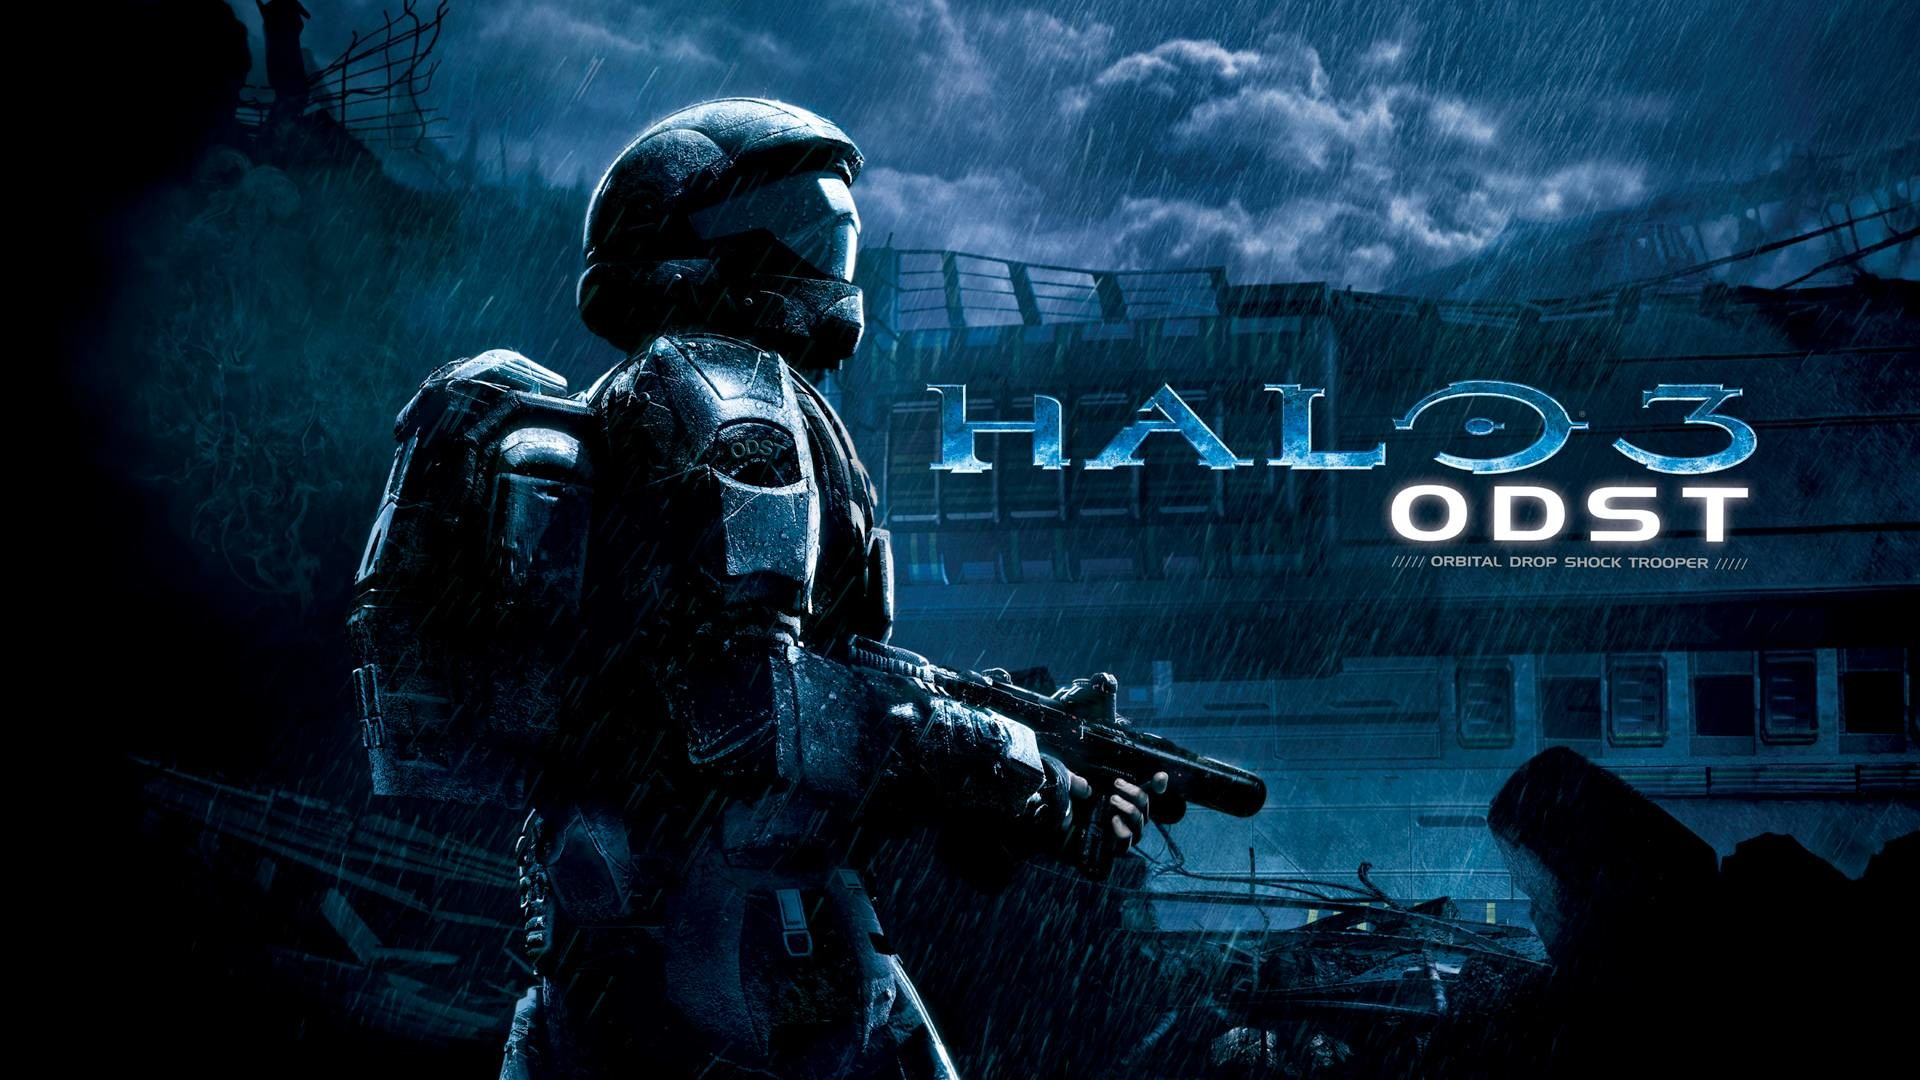 Wallpapers For > Halo 3 Odst Wallpaper 1920×1080